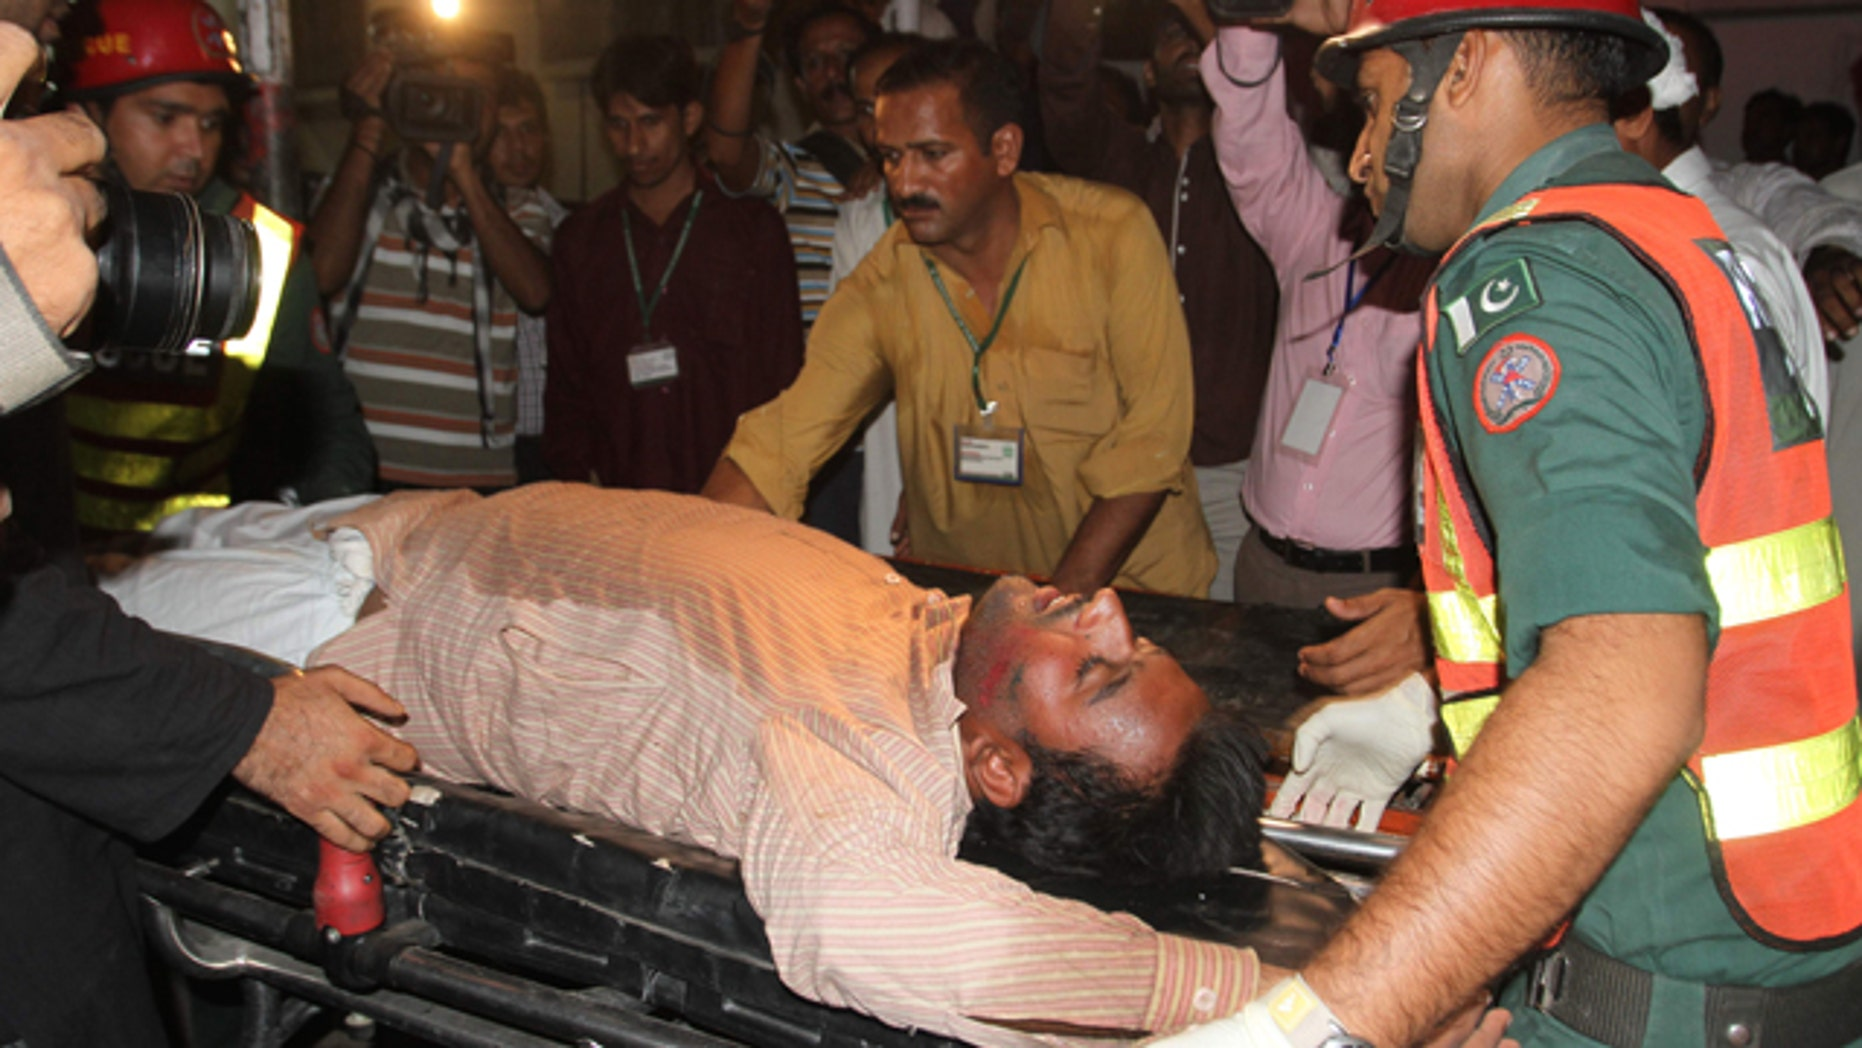 October 10, 2014: Pakistani rescue workers rush an injured person to a local hospital in Multan. (AP Photo/Asim Tanveer)